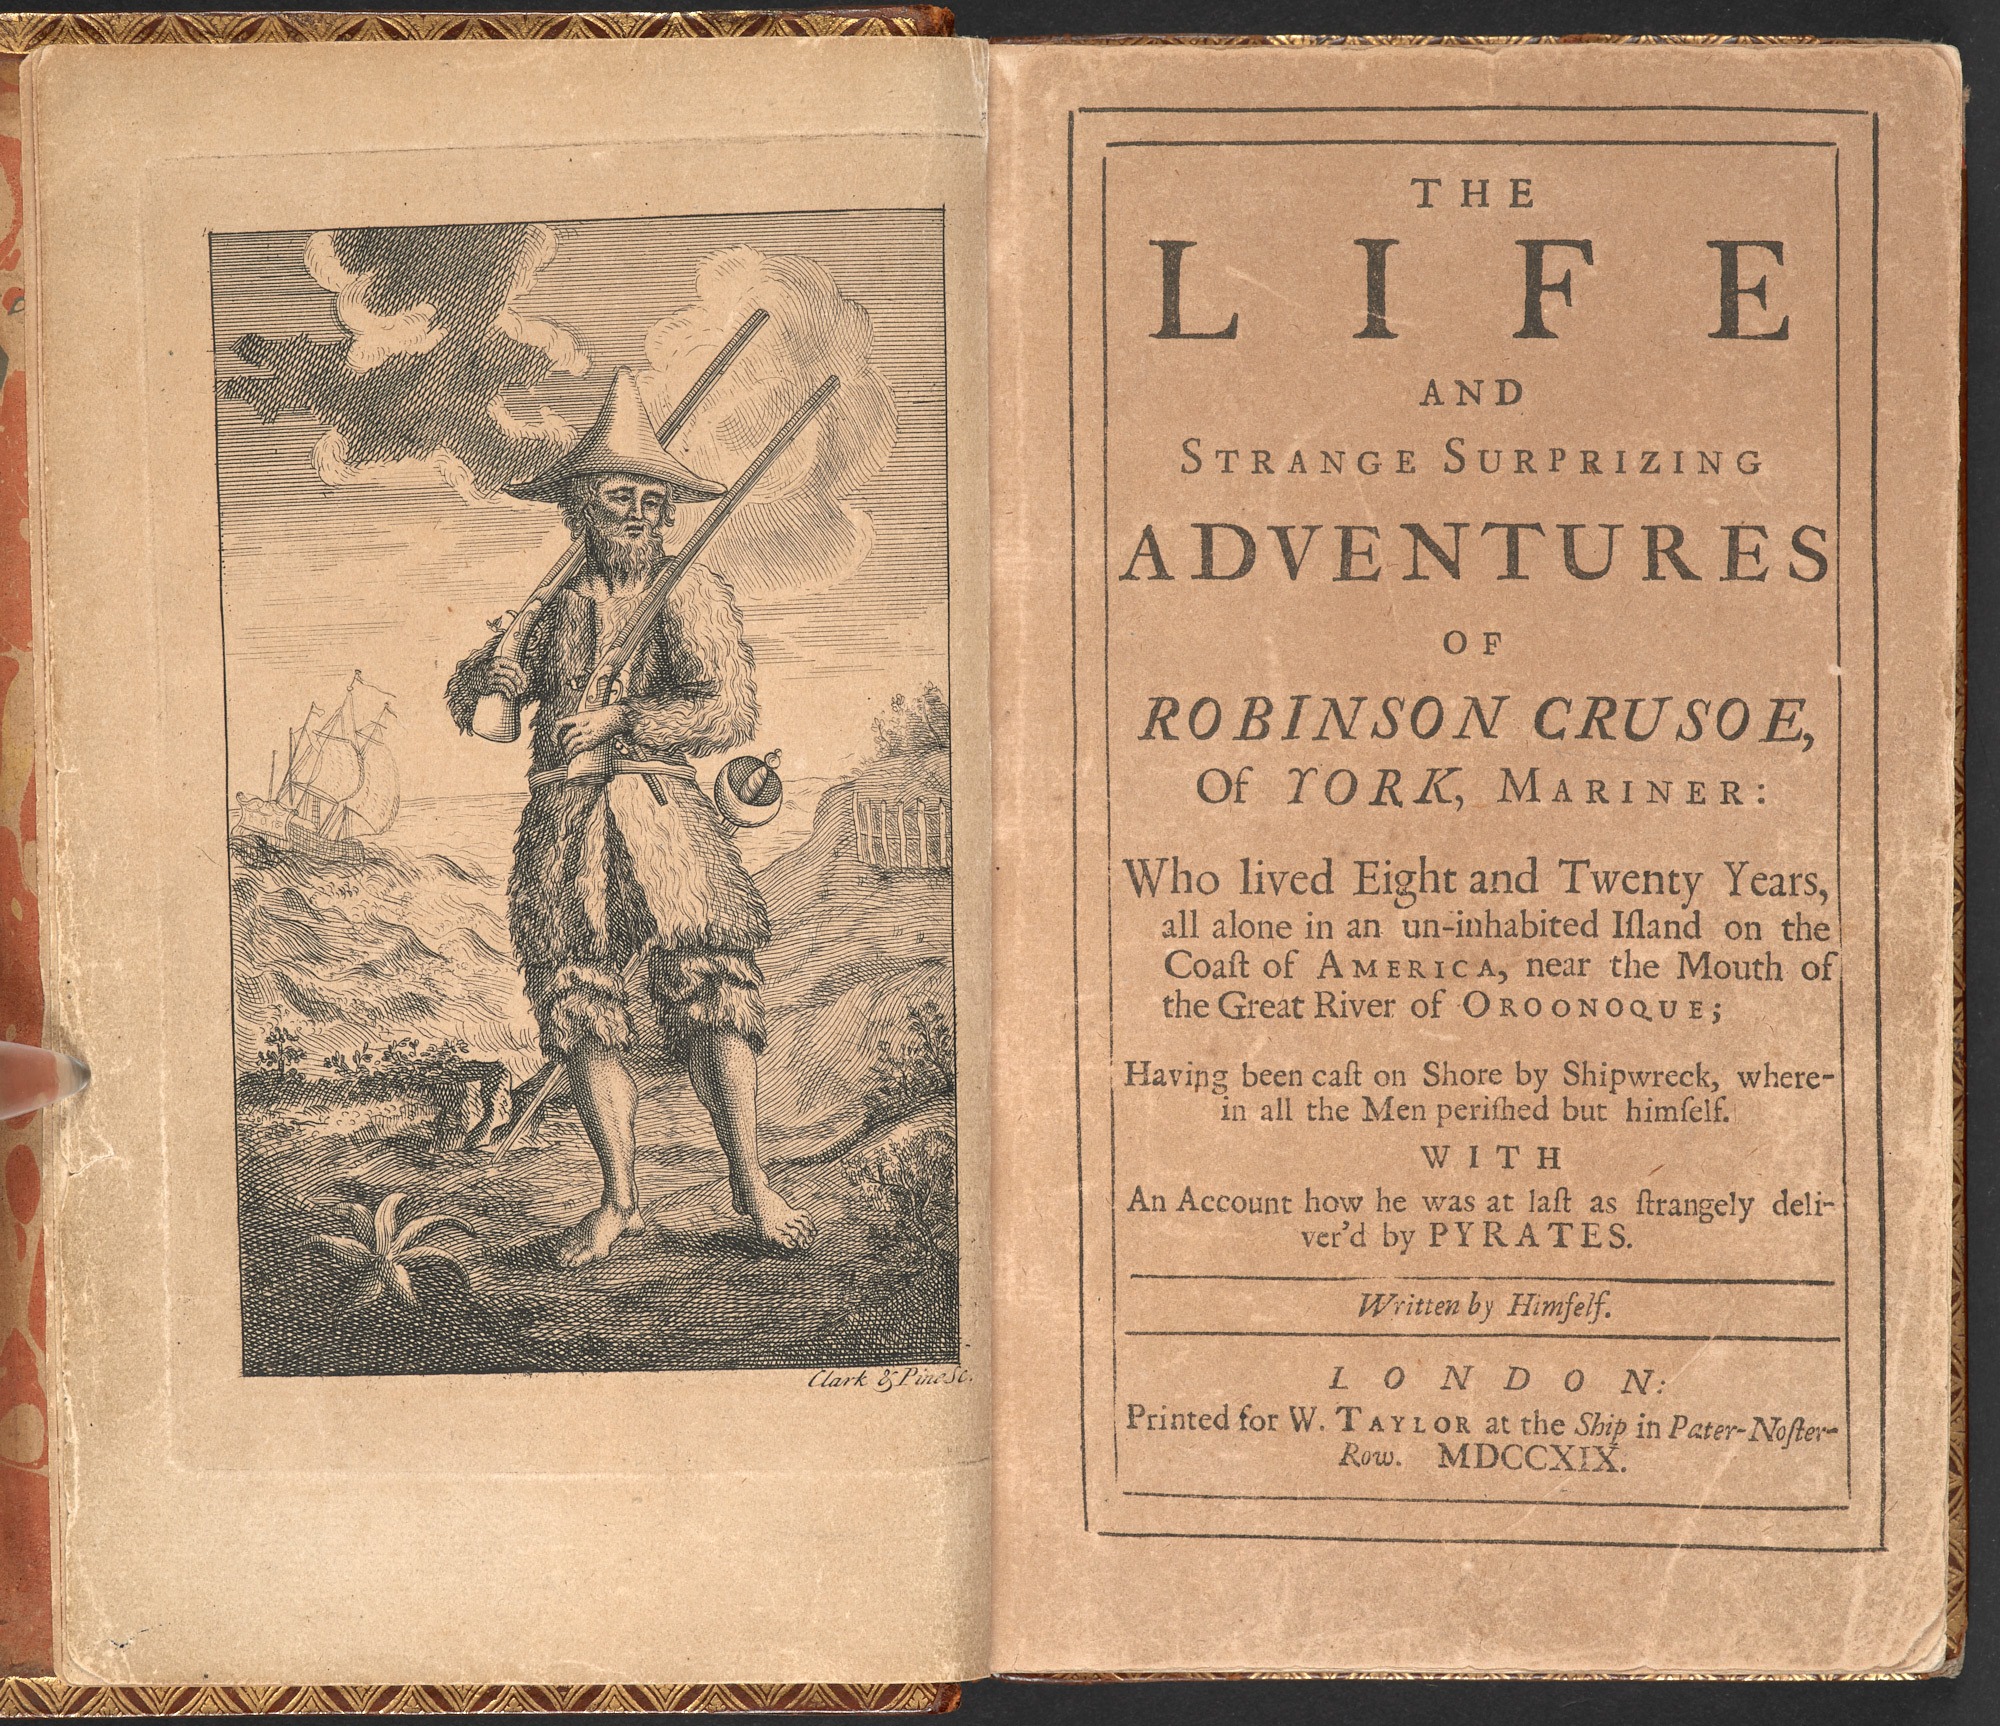 The Life and Strange Surprising Adventures of Robinson Crusoe, of York, Mariner